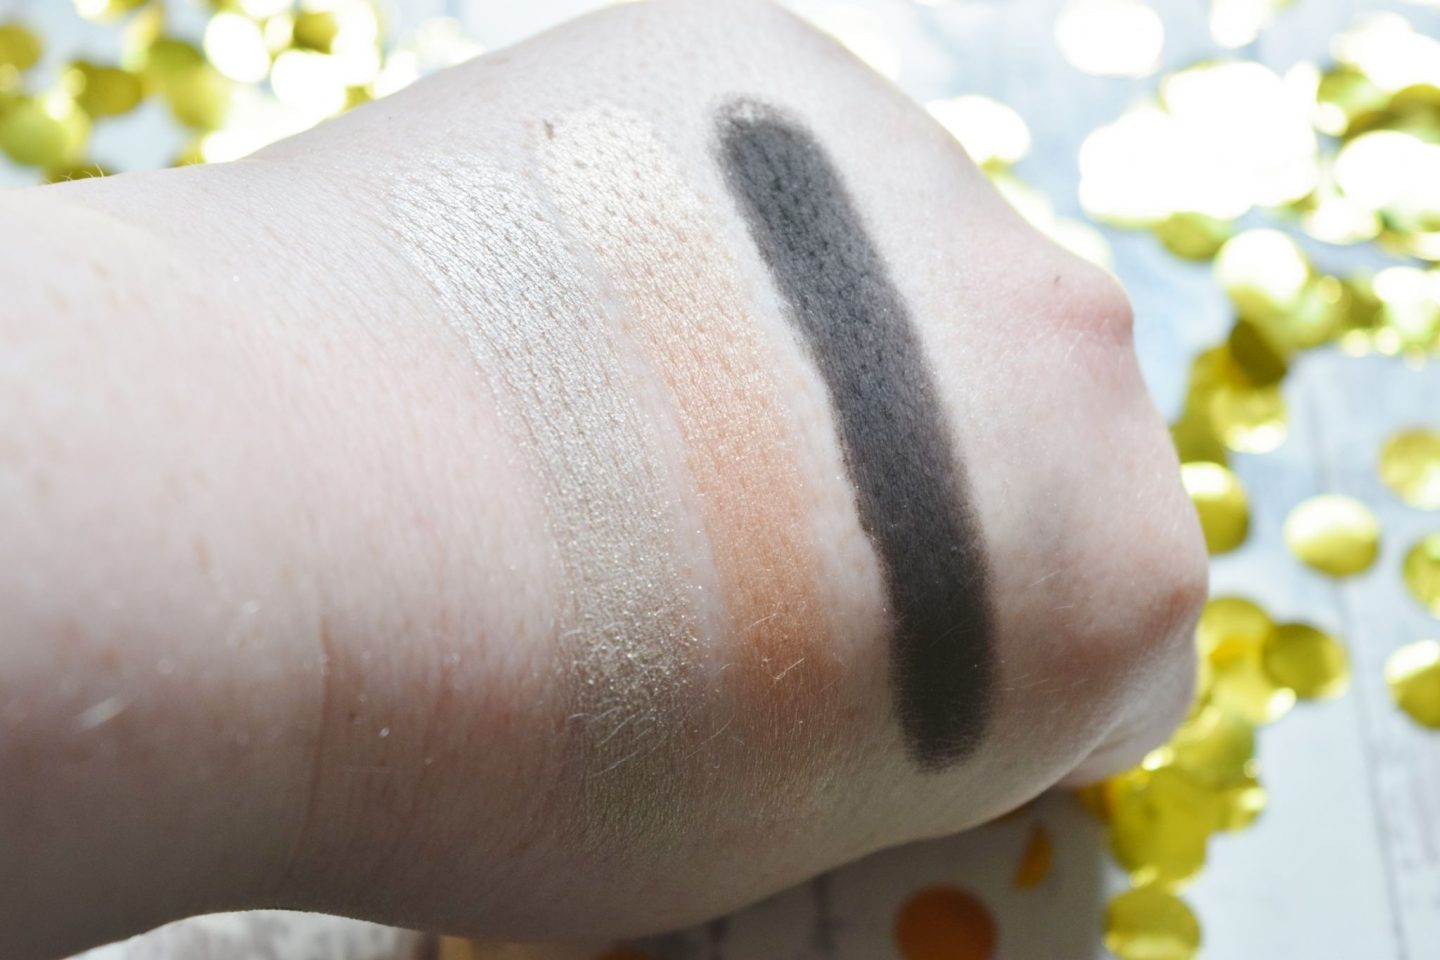 Bobbi Brown Dreaming of Capri Nudes Eyeshadow Palette swatches